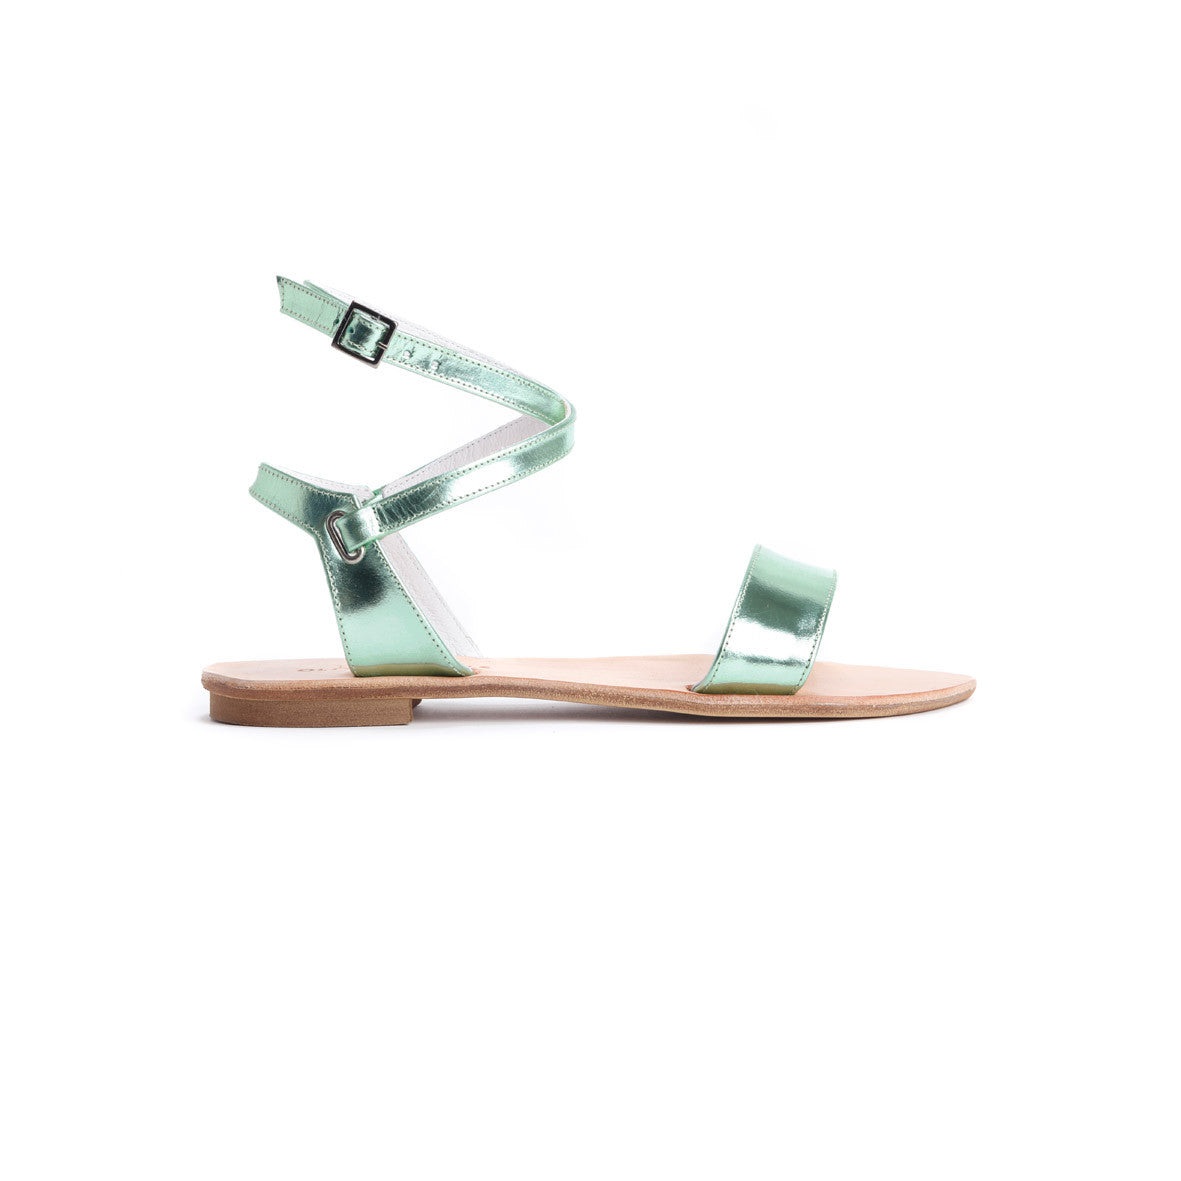 Metallic Leather Sandals - Ellie